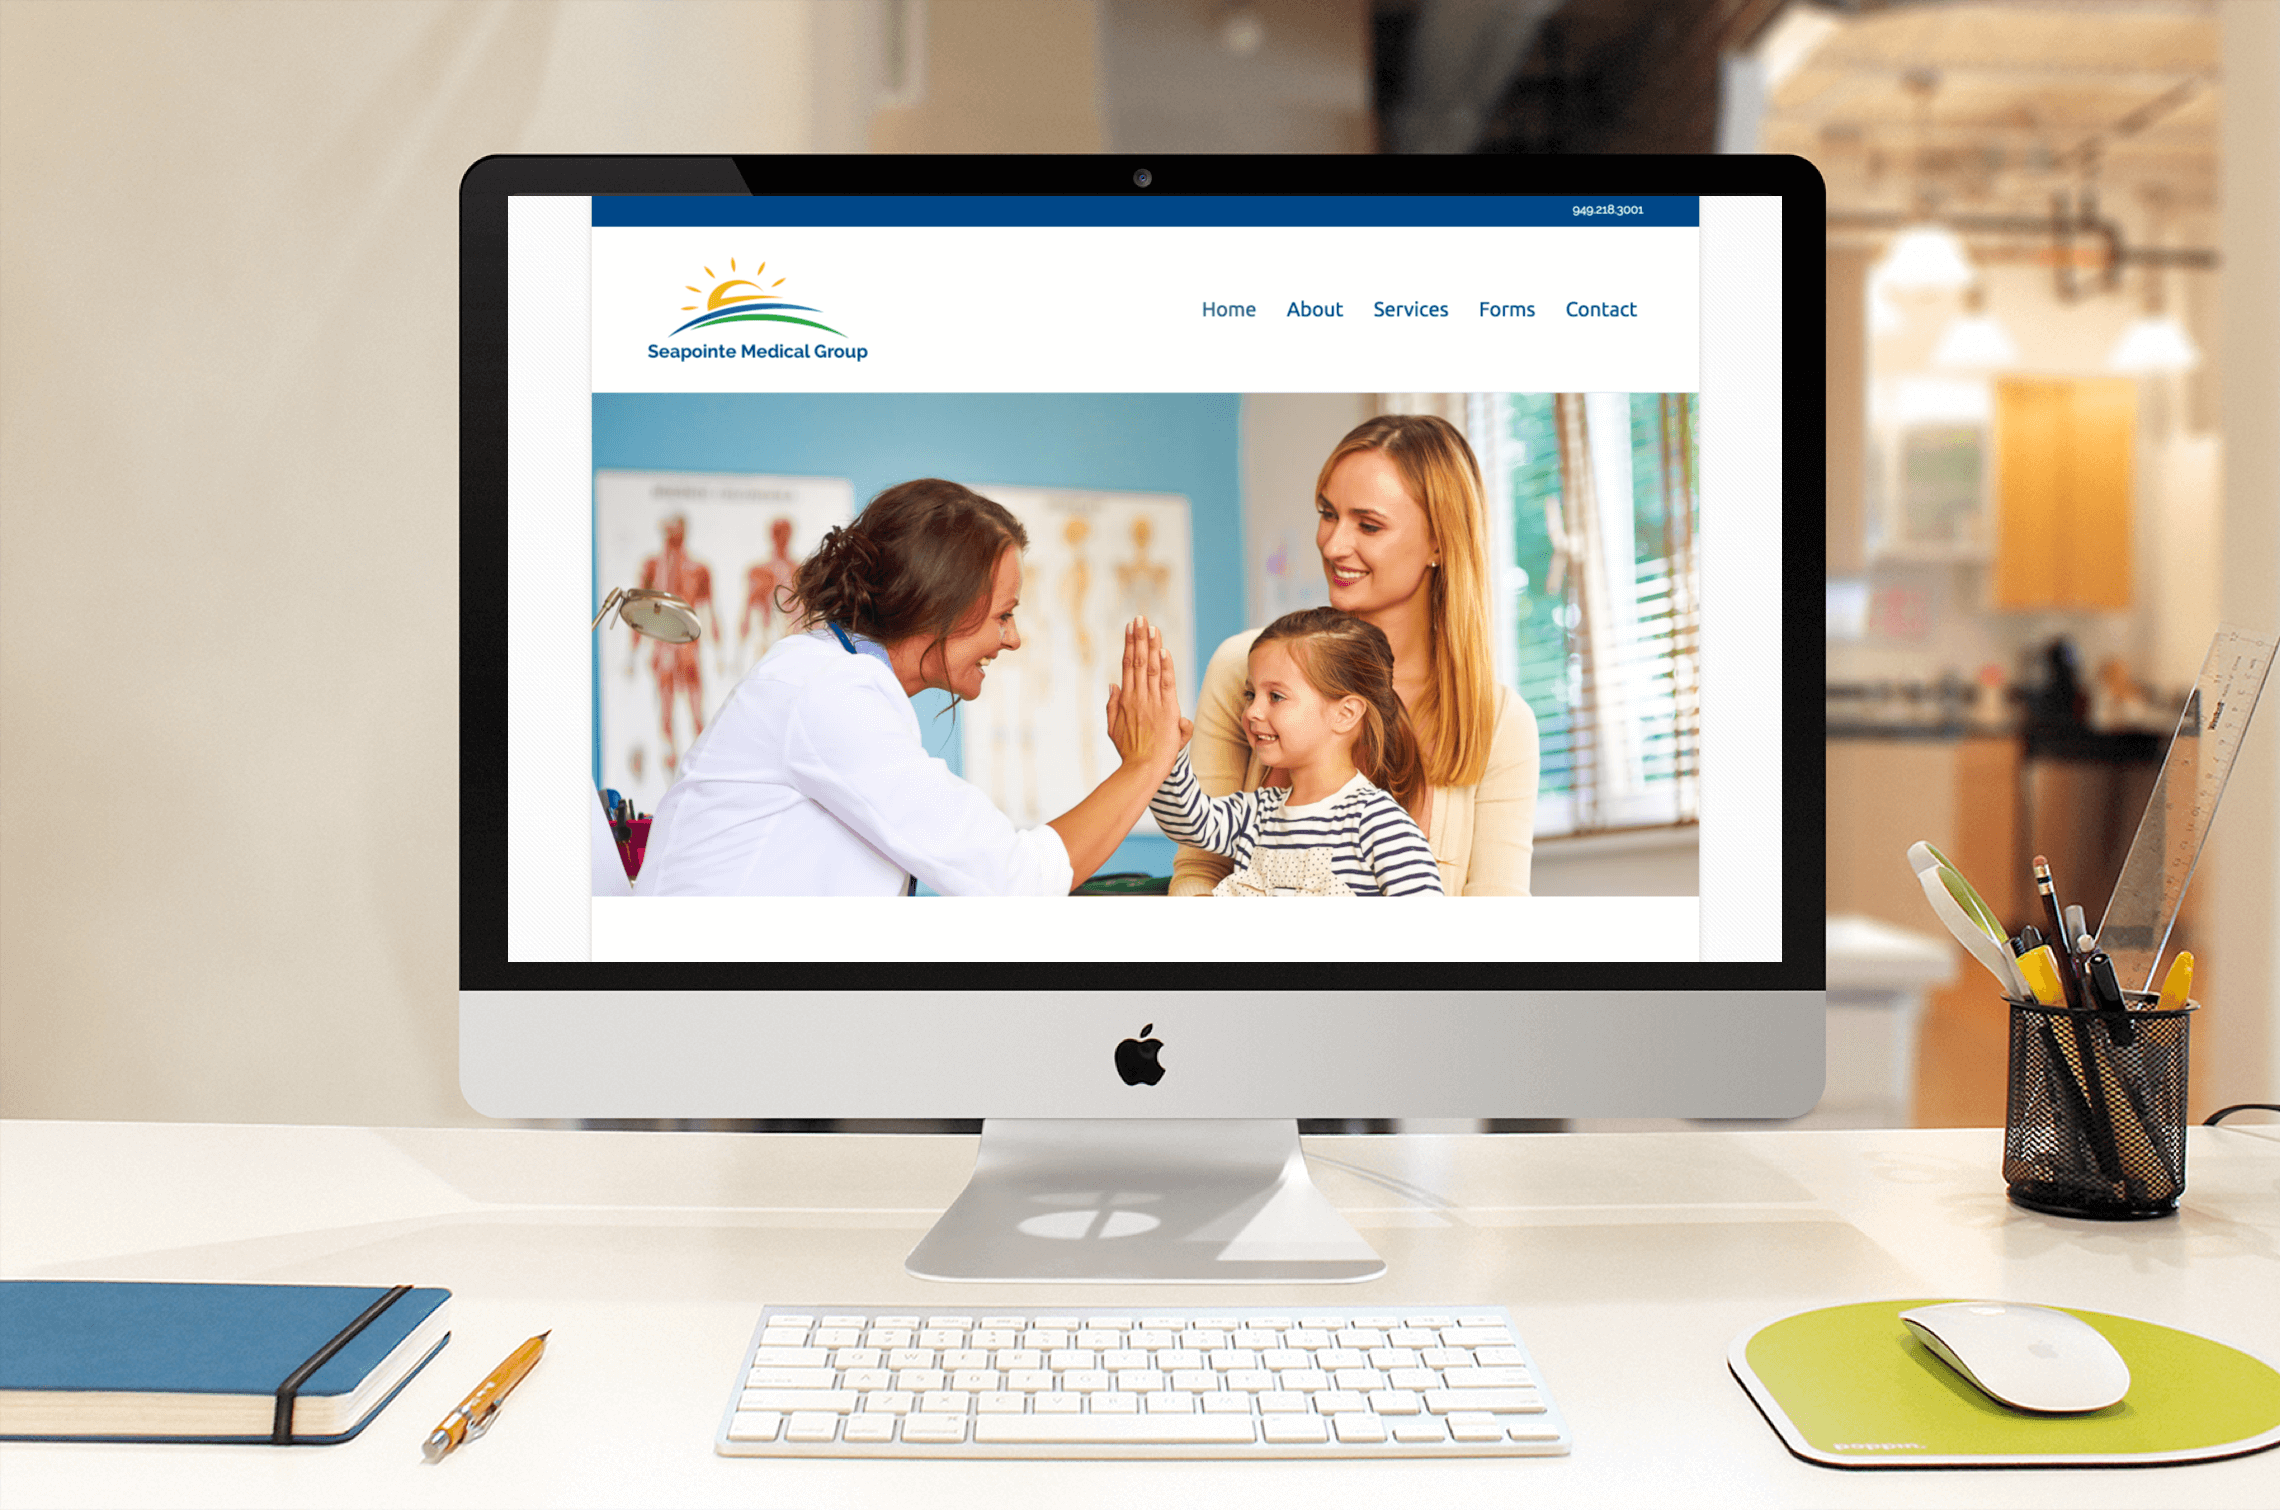 wordpress-seapointe-medical-group-fi